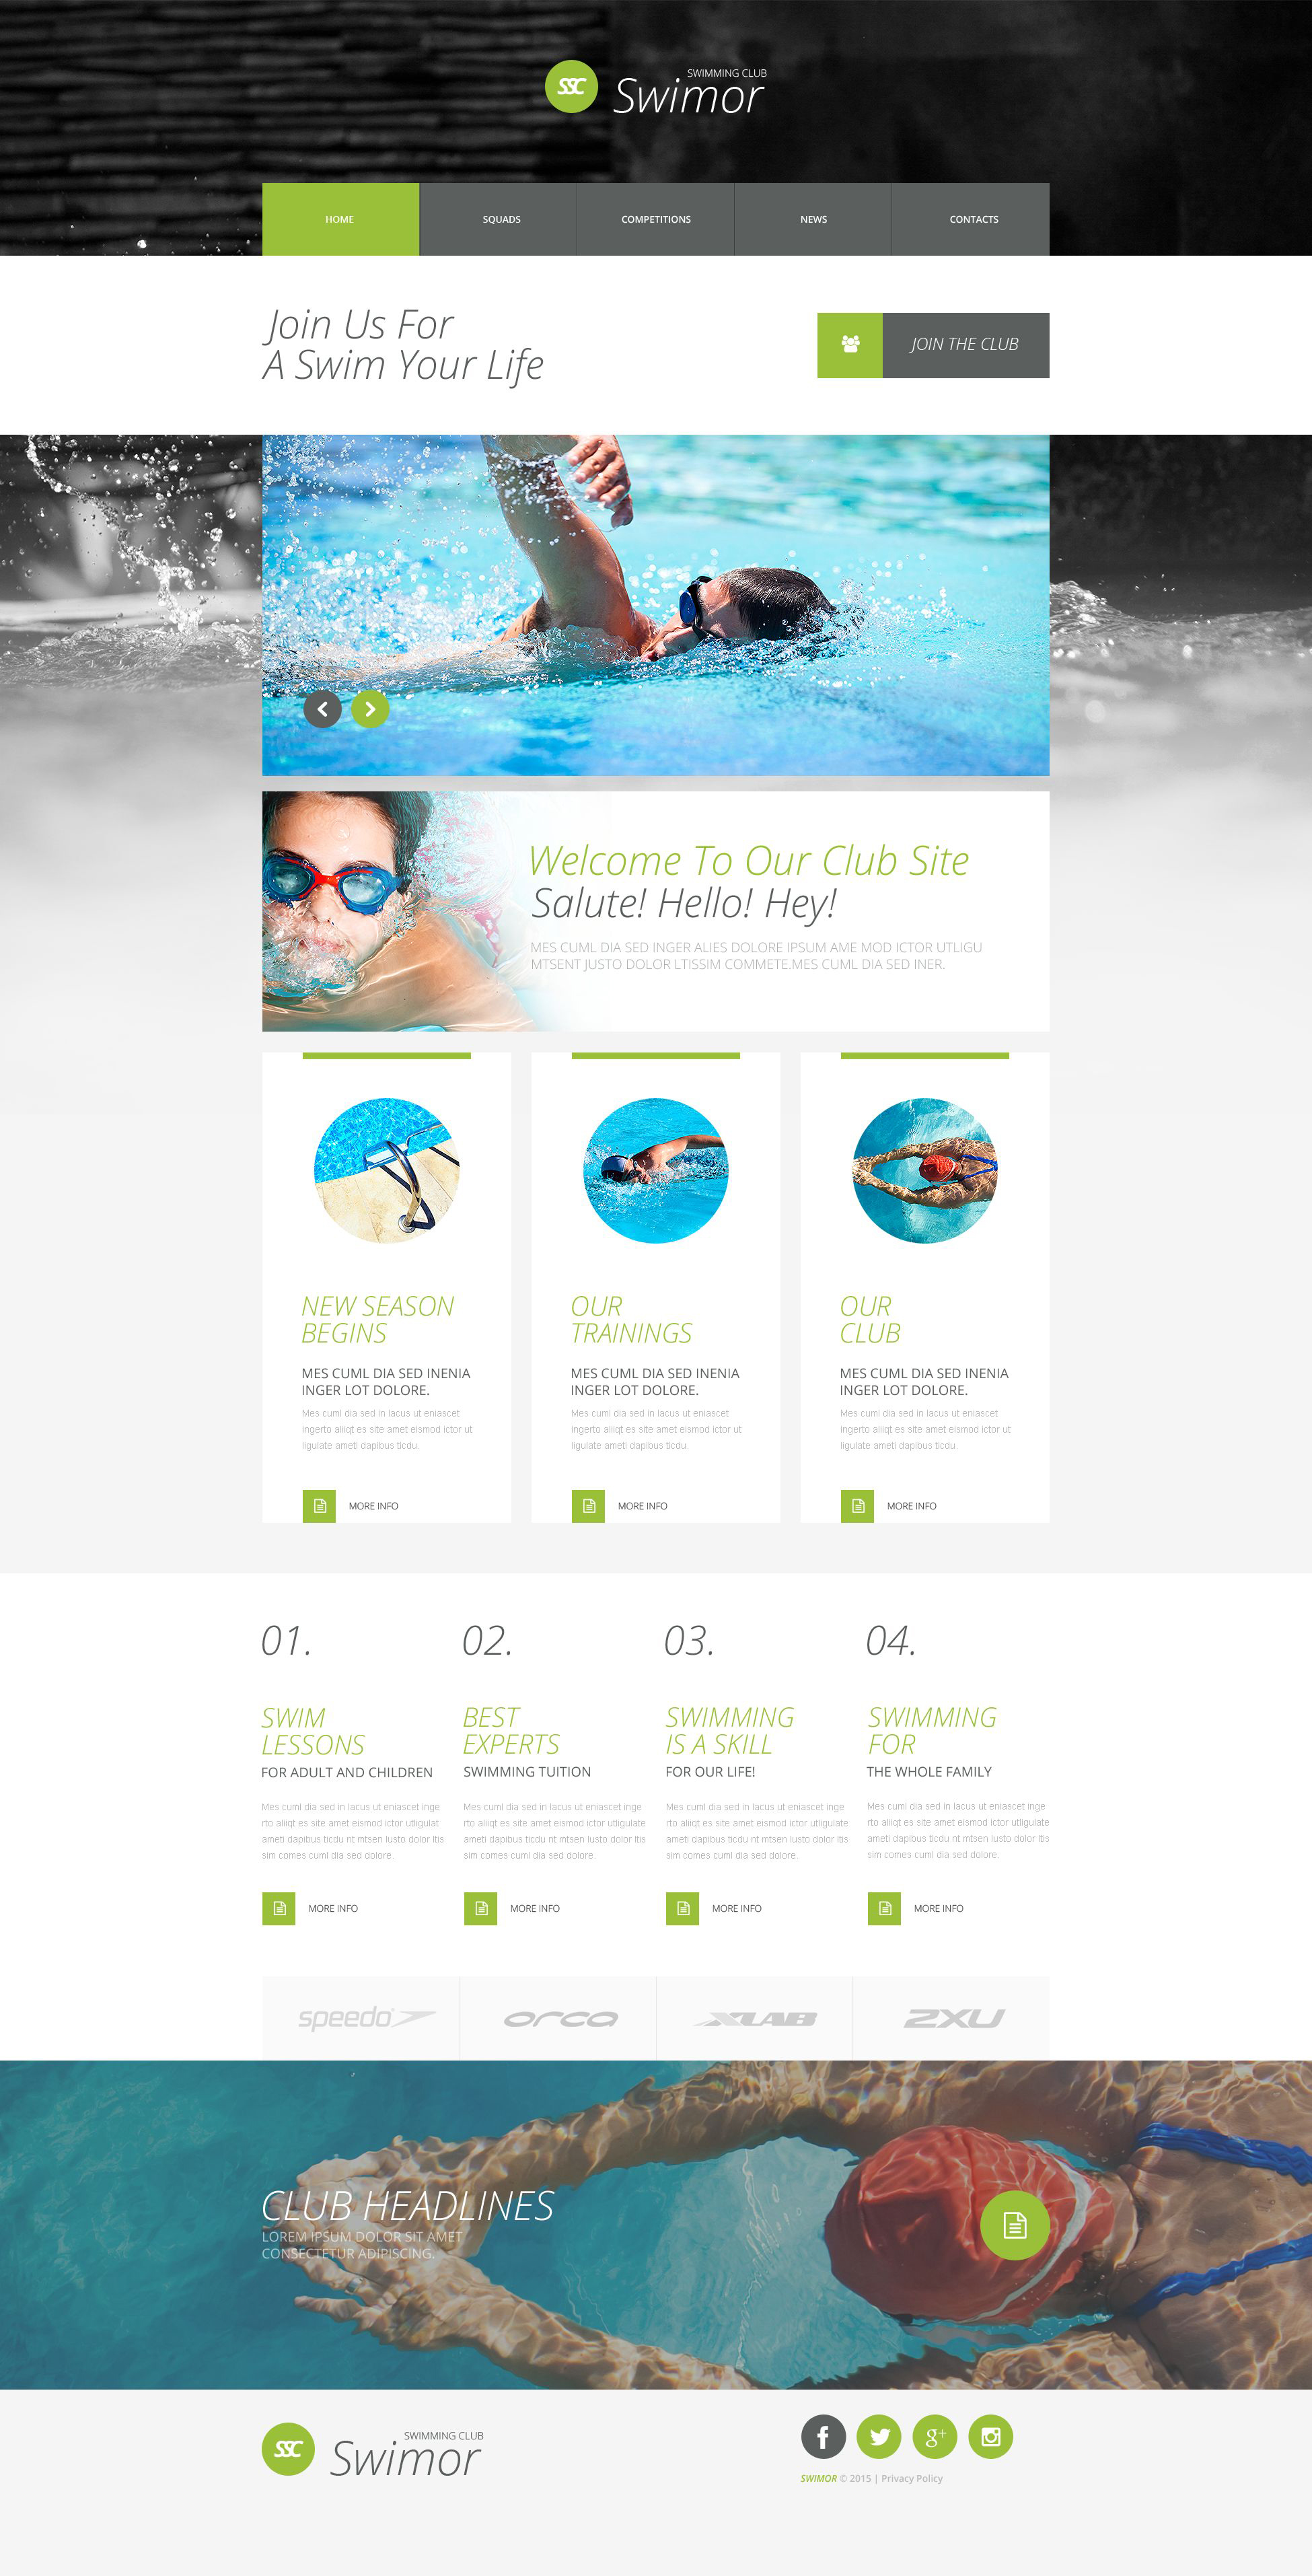 The Swimor News Responsive Javascript Animated Design 53646, one of the best website templates of its kind (sport, most popular), also known as swimor news website template, swimming website template, information website template, events website template, video website template, gallery website template, schedule website template, forum website template, pool website template, water website template, training website template, team and related with swimor news, swimming, information, events, video, gallery, schedule, forum, pool, water, training, team, etc.